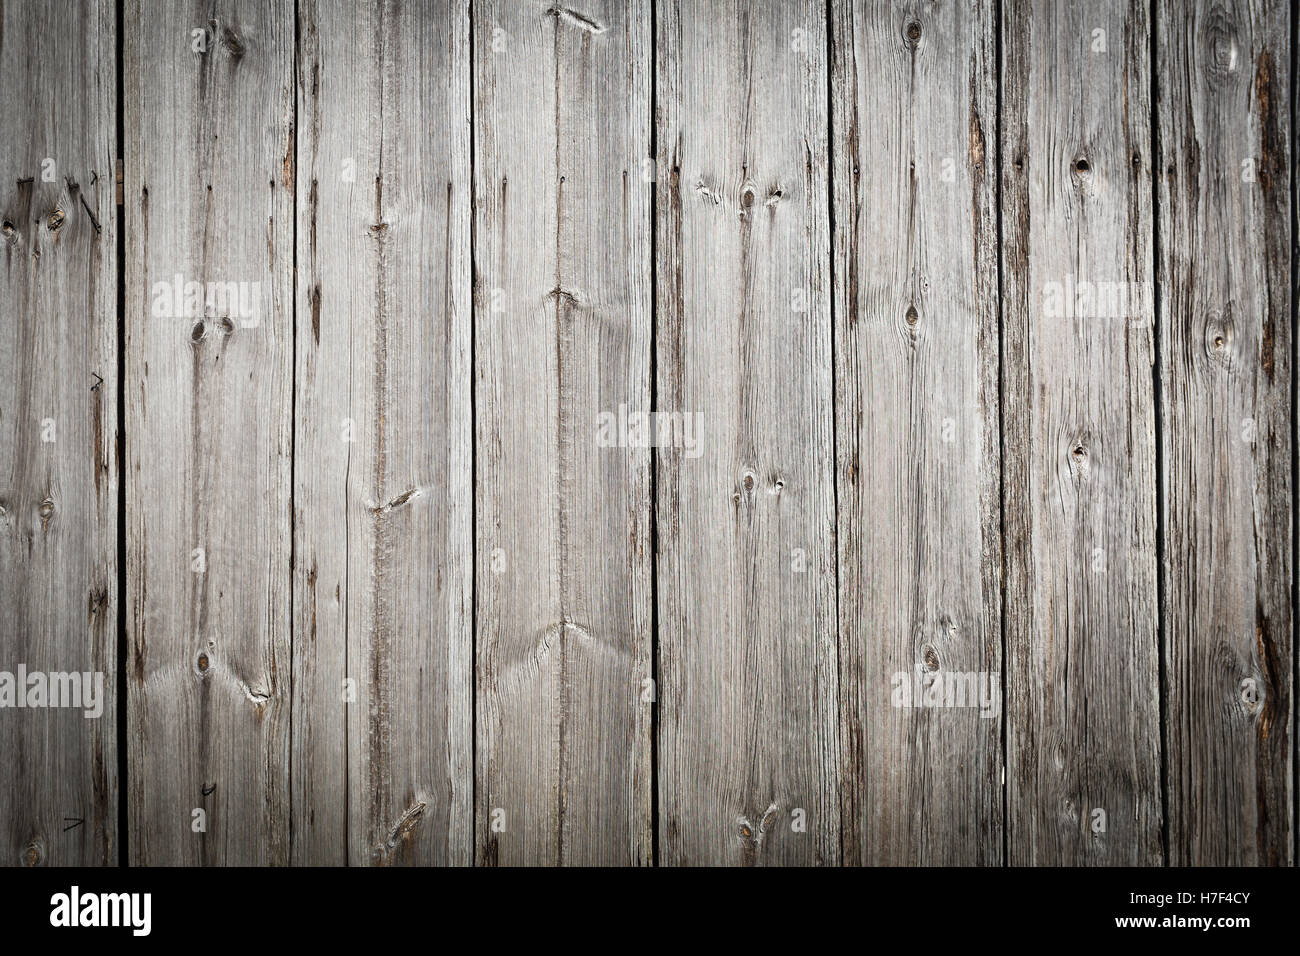 Wooden boards, grey color background, vertical lines, horizontal orientation,vignette - Stock Image